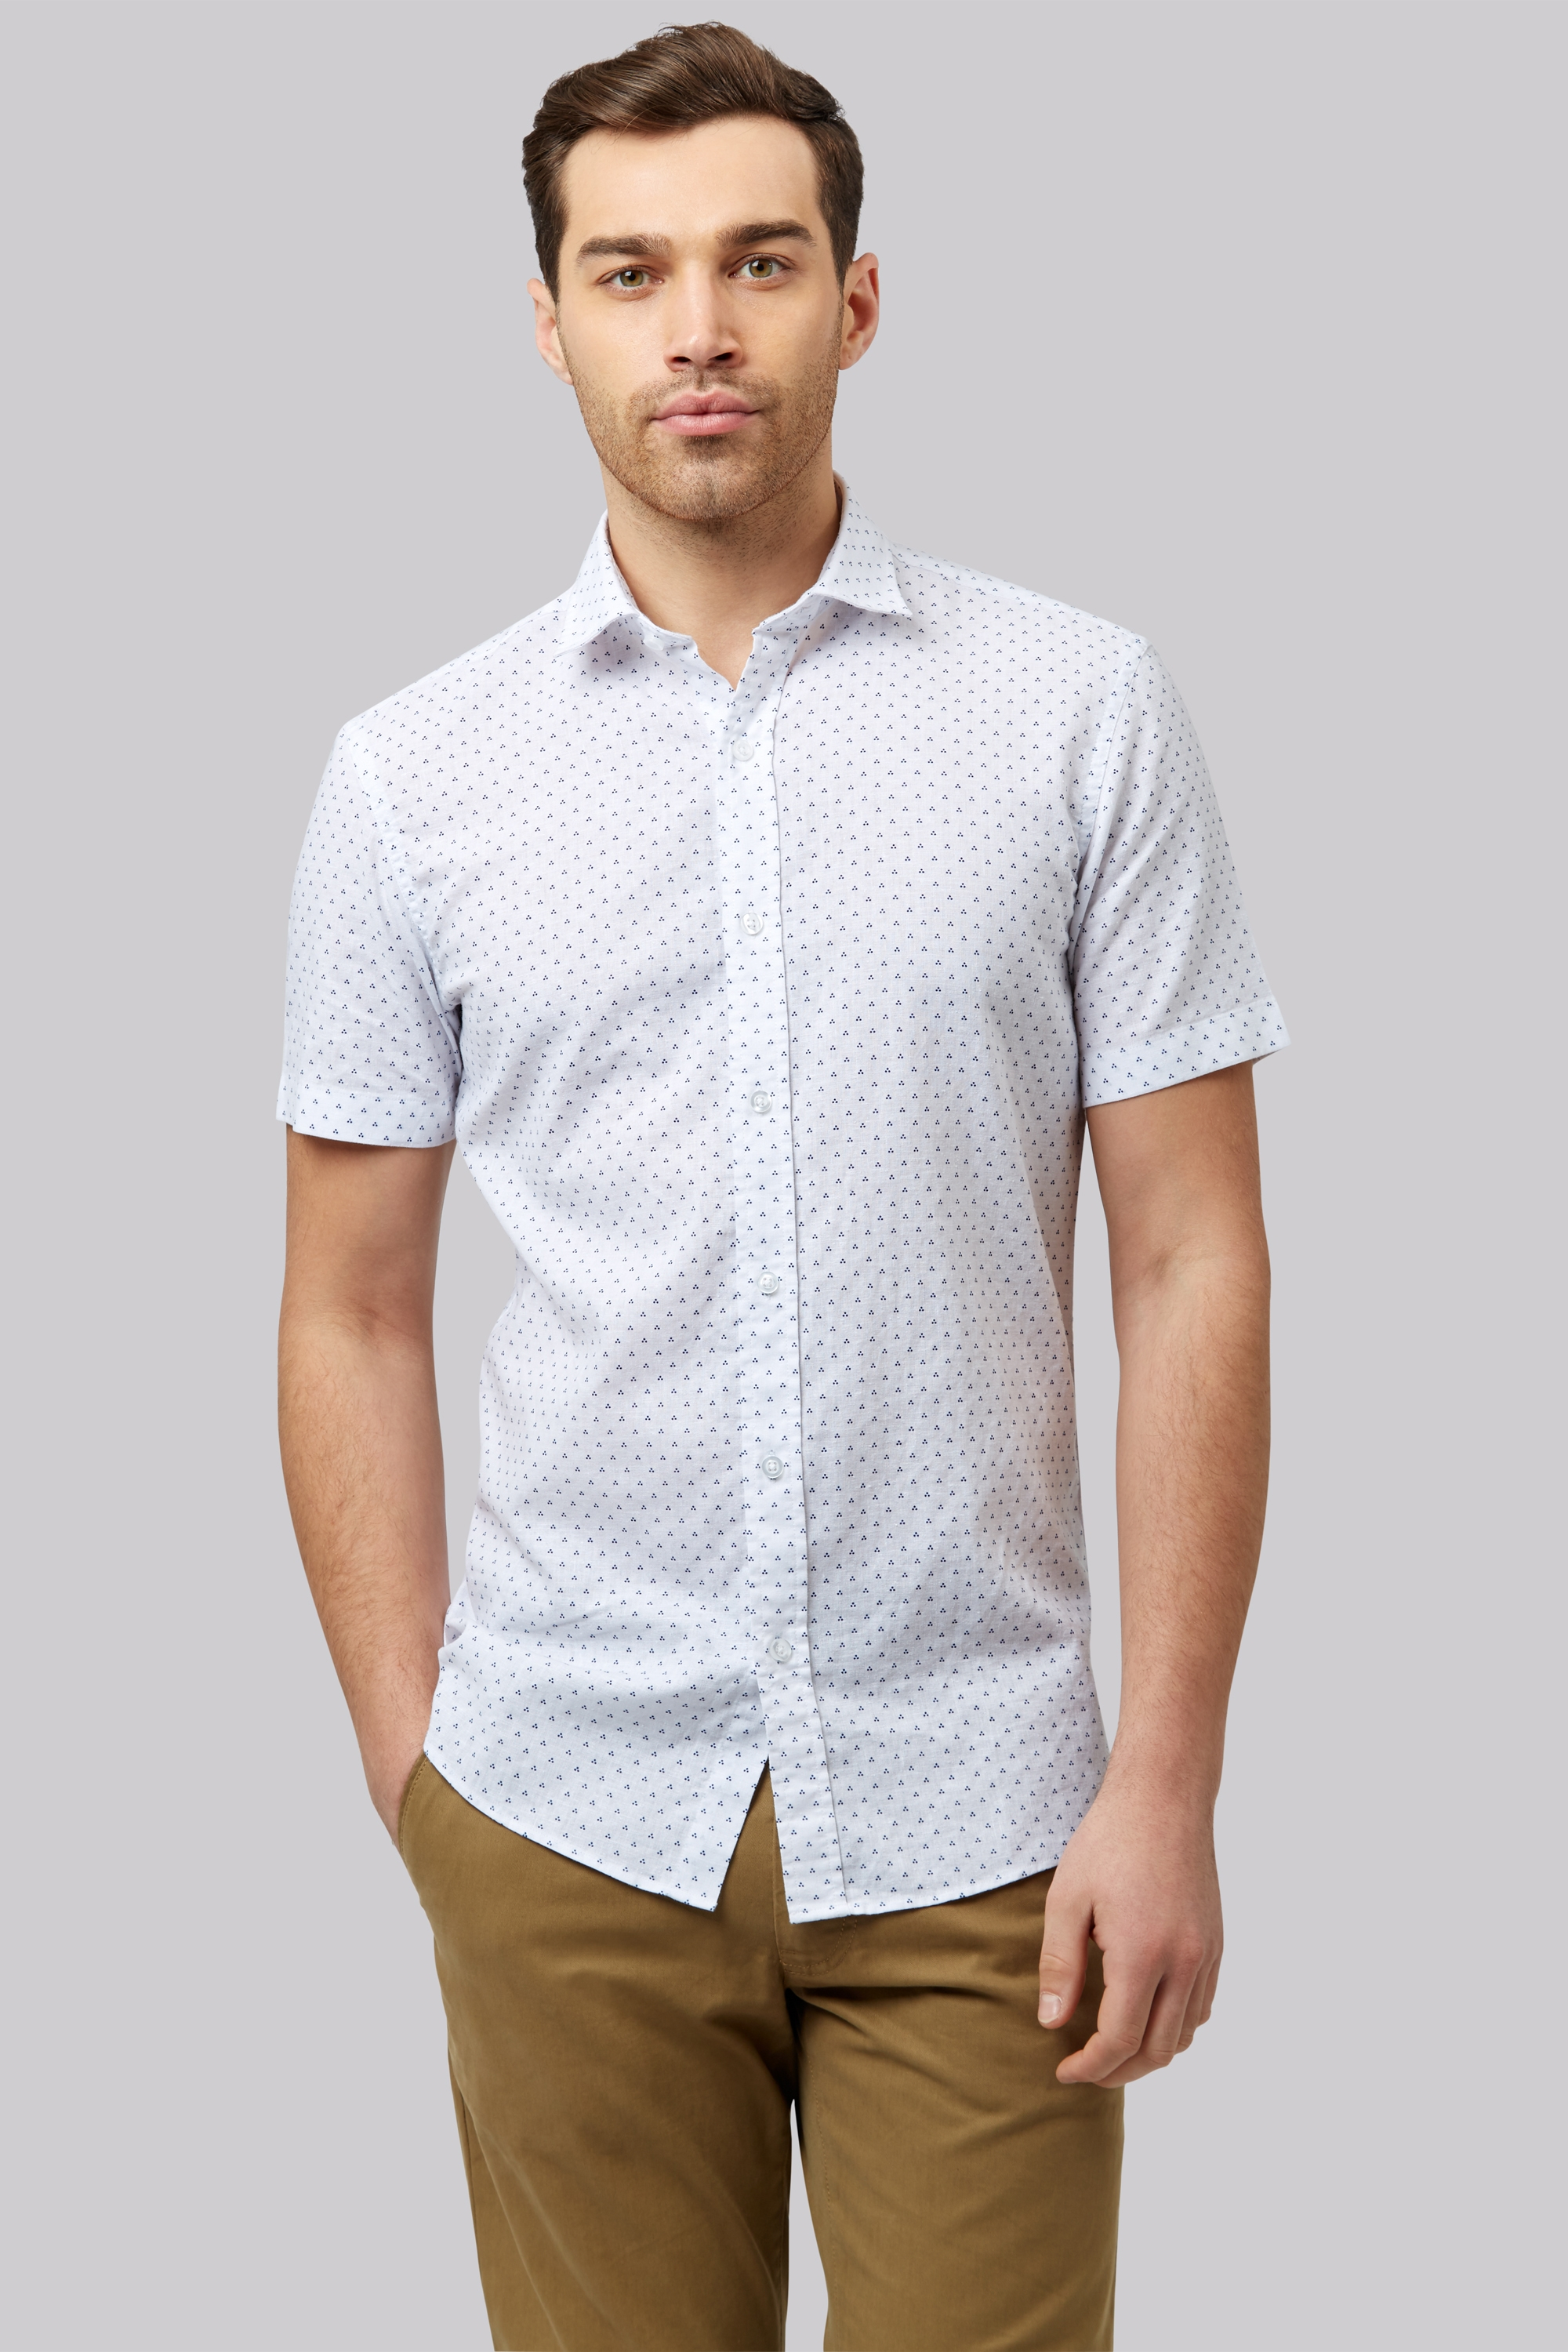 Moss 1851 Slim Fit White Linen Short Sleeve Printed Casual